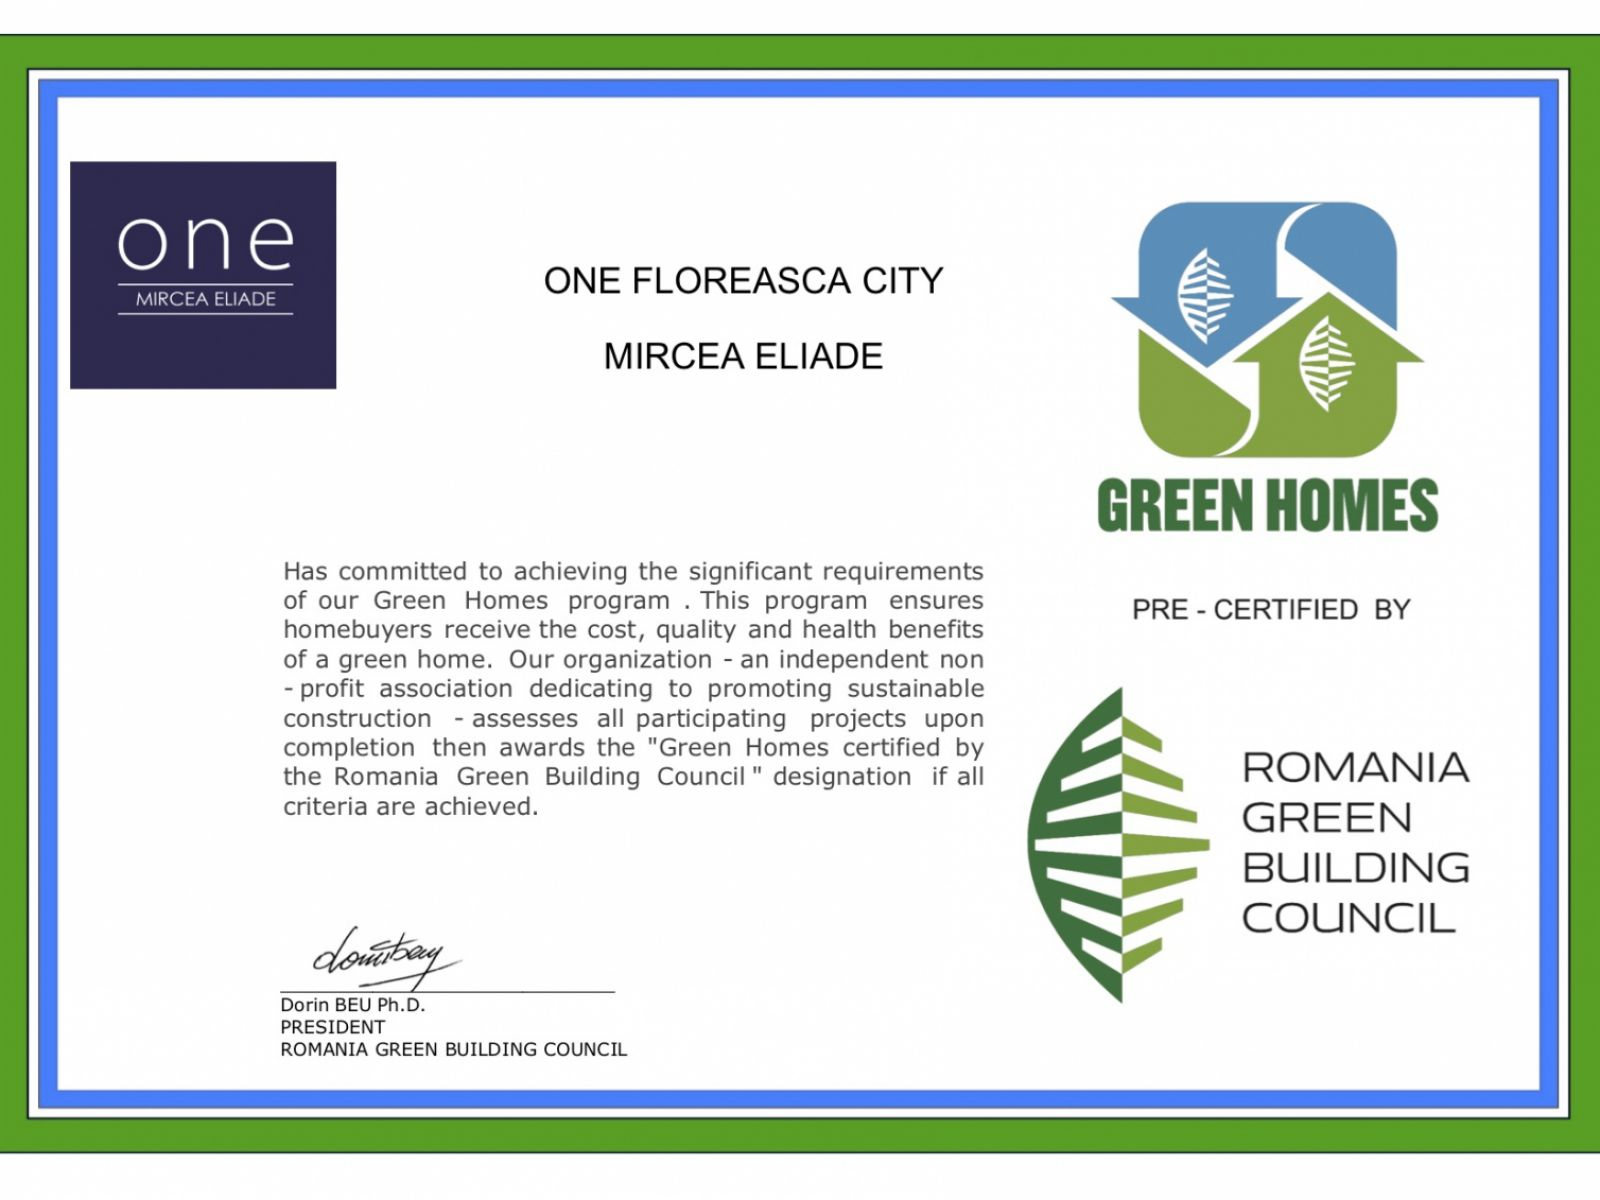 """One Mircea Eliade was granted the """"Green Homes"""" pre-certification from Romanian Green Building Council"""